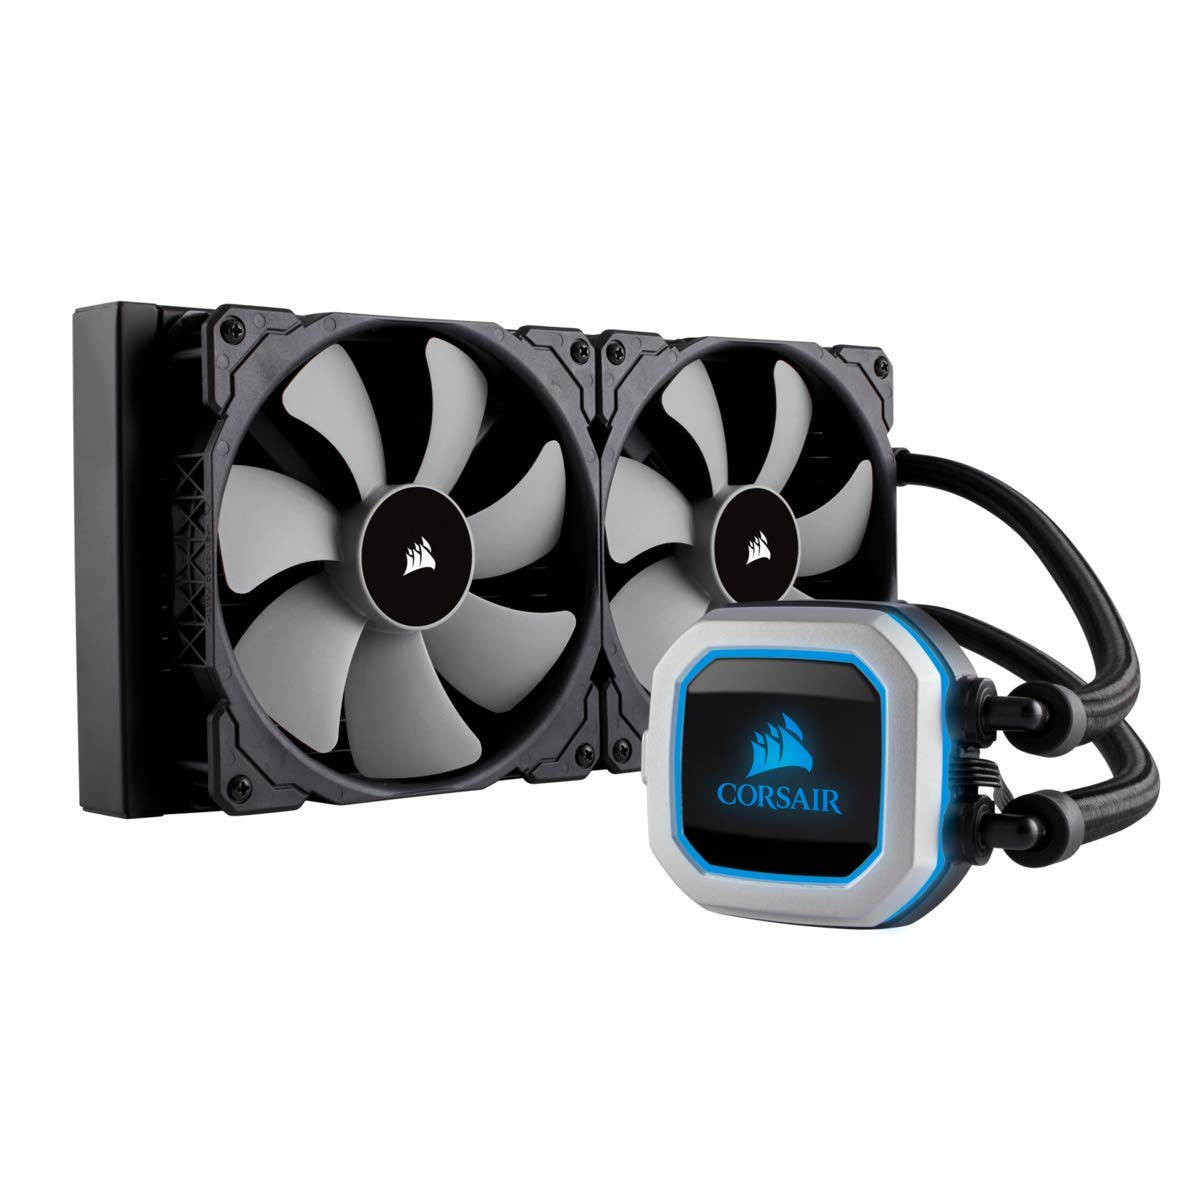 16548eb673b CORSAIR HYDRO Series H115i PRO RGB AIO Liquid CPU Cooler,280mm, Dual ML140  PWM Fans, Intel 115x/2066, AMD AM4